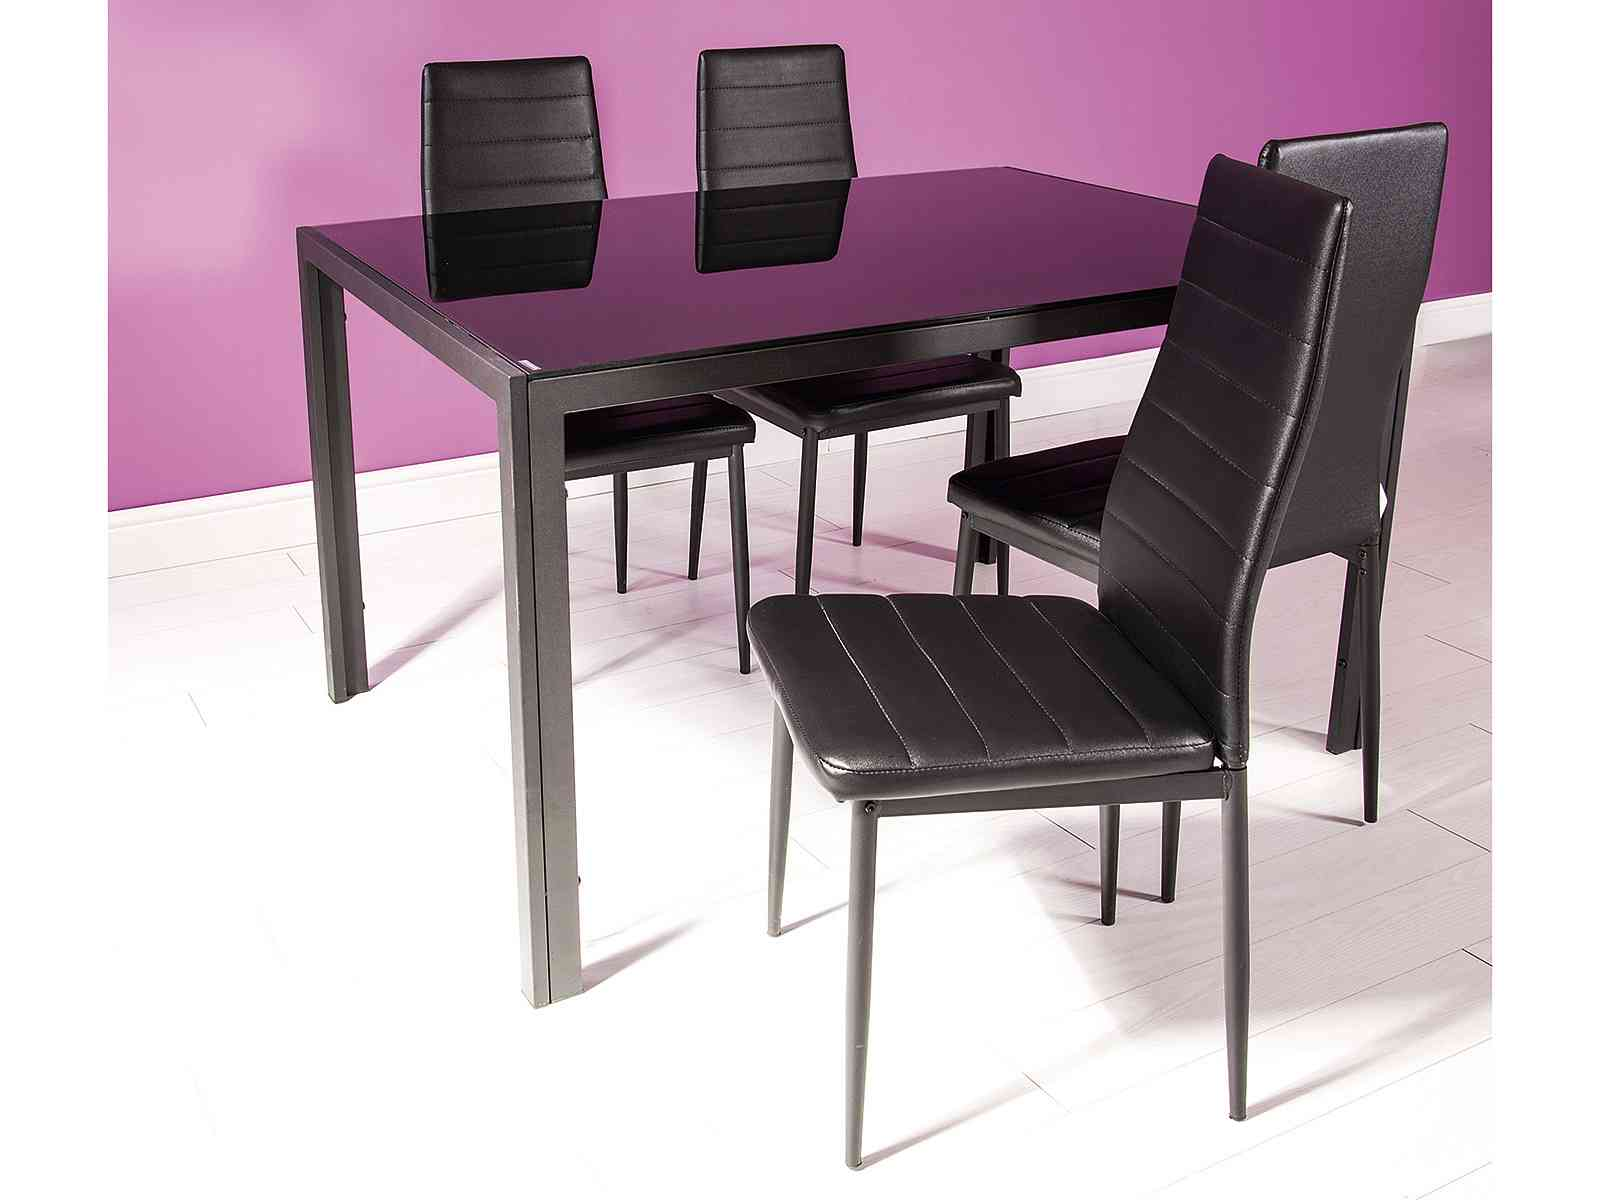 Gfw the furniture warehouse houston 4 chair dining set for G furniture houston